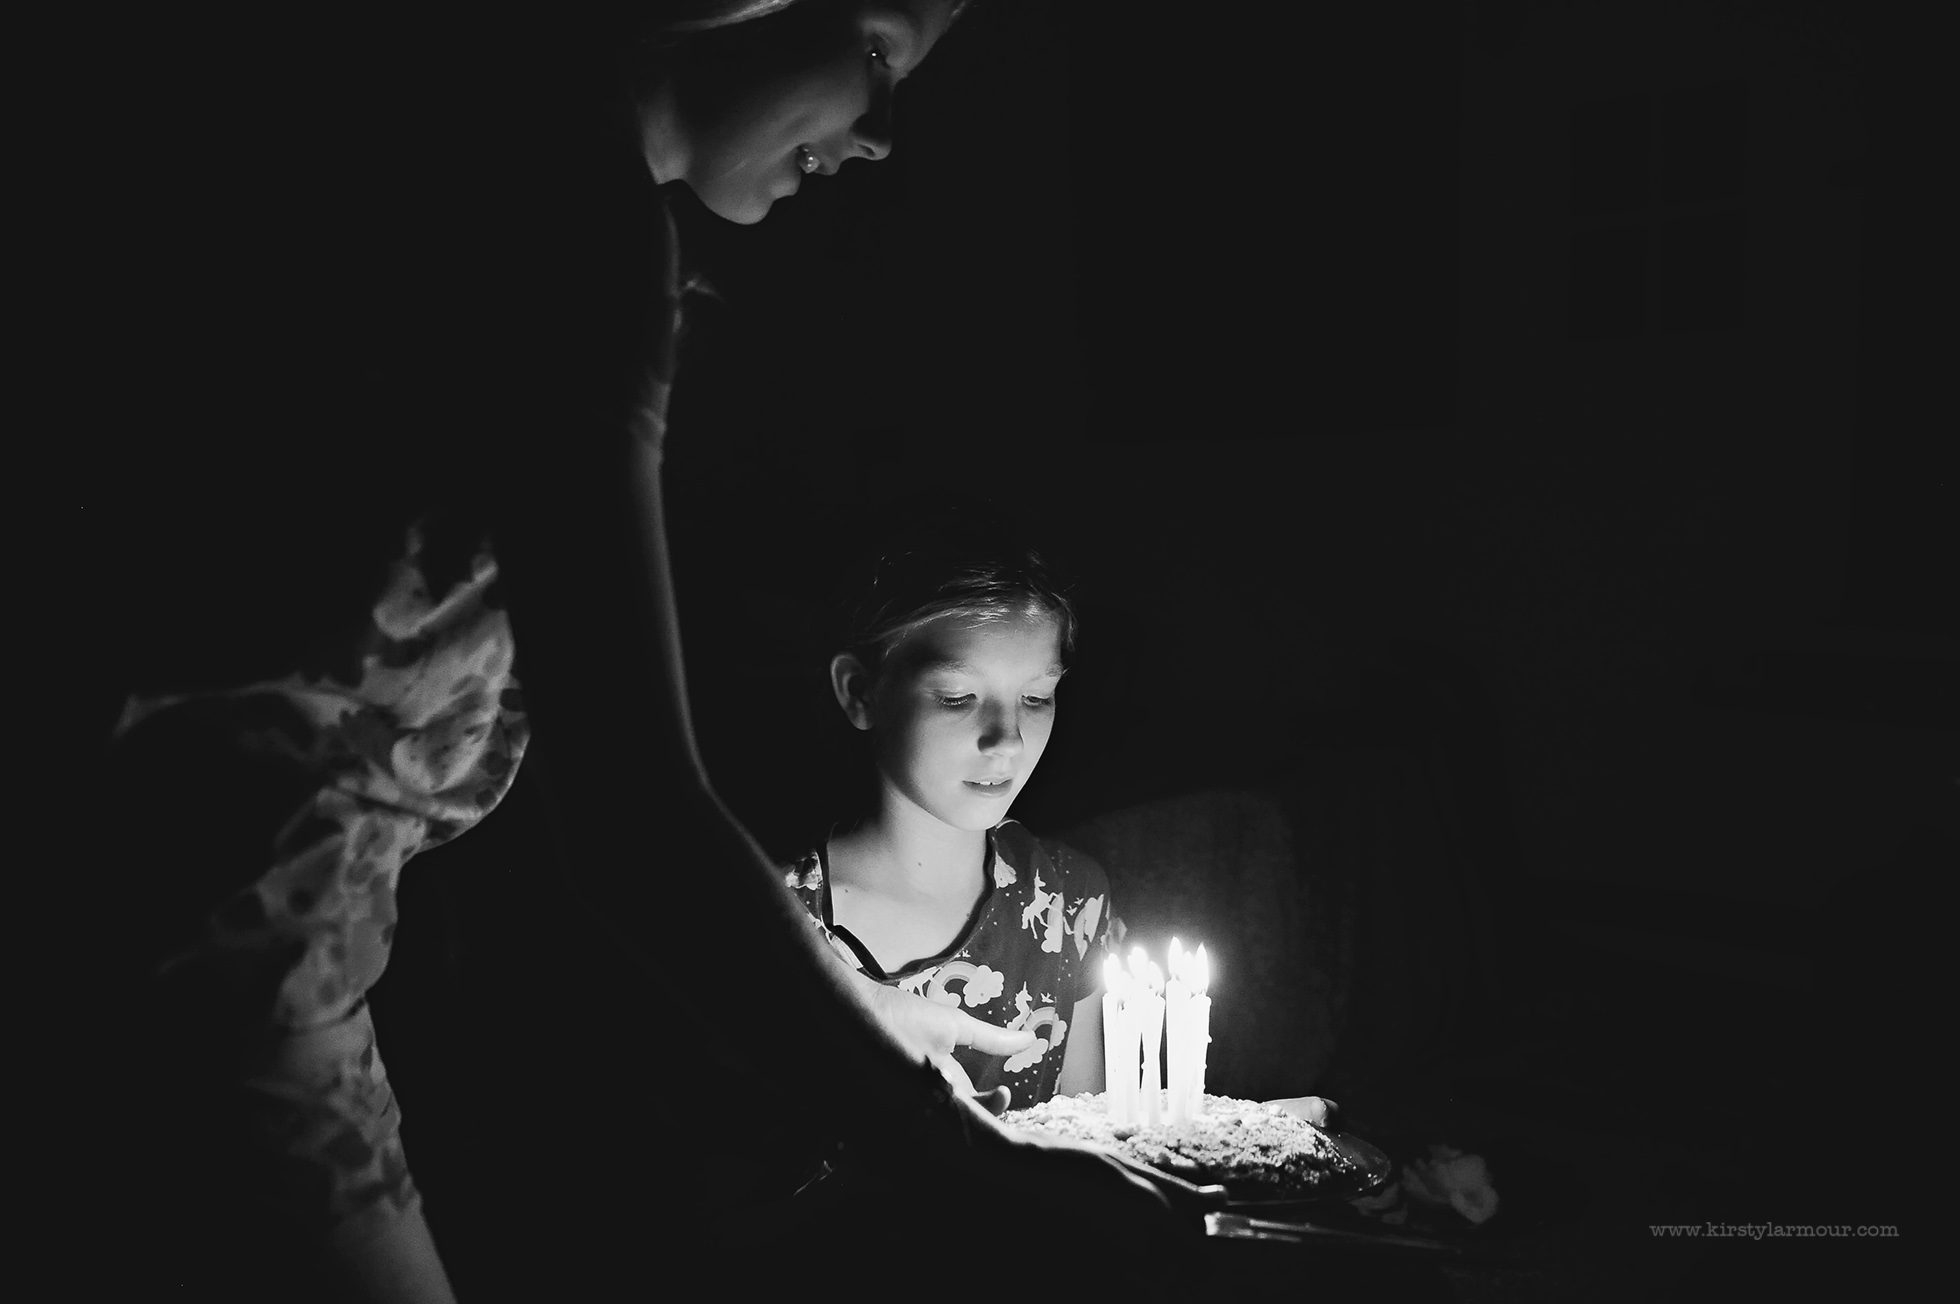 An older girl gives her younger sister a birthday cake with 11 candles | by Kirsty Larmour